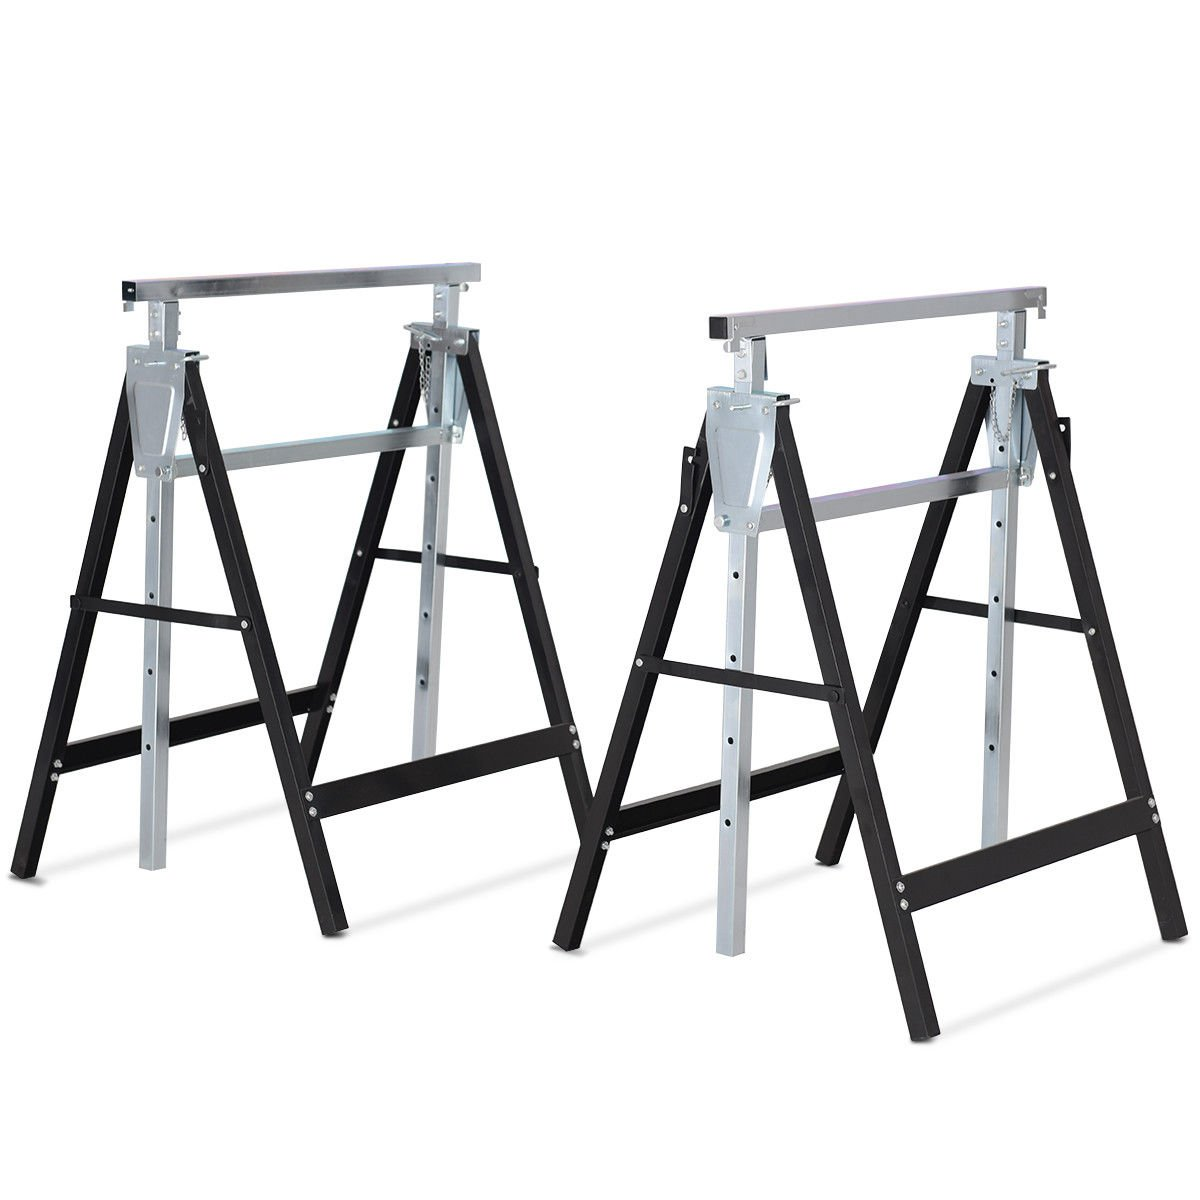 GJH One Sawhorse Height Adjustable Folding Heavy Duty Trestle Capacity Sawhouse Brackets 440 lbs 2 Pack